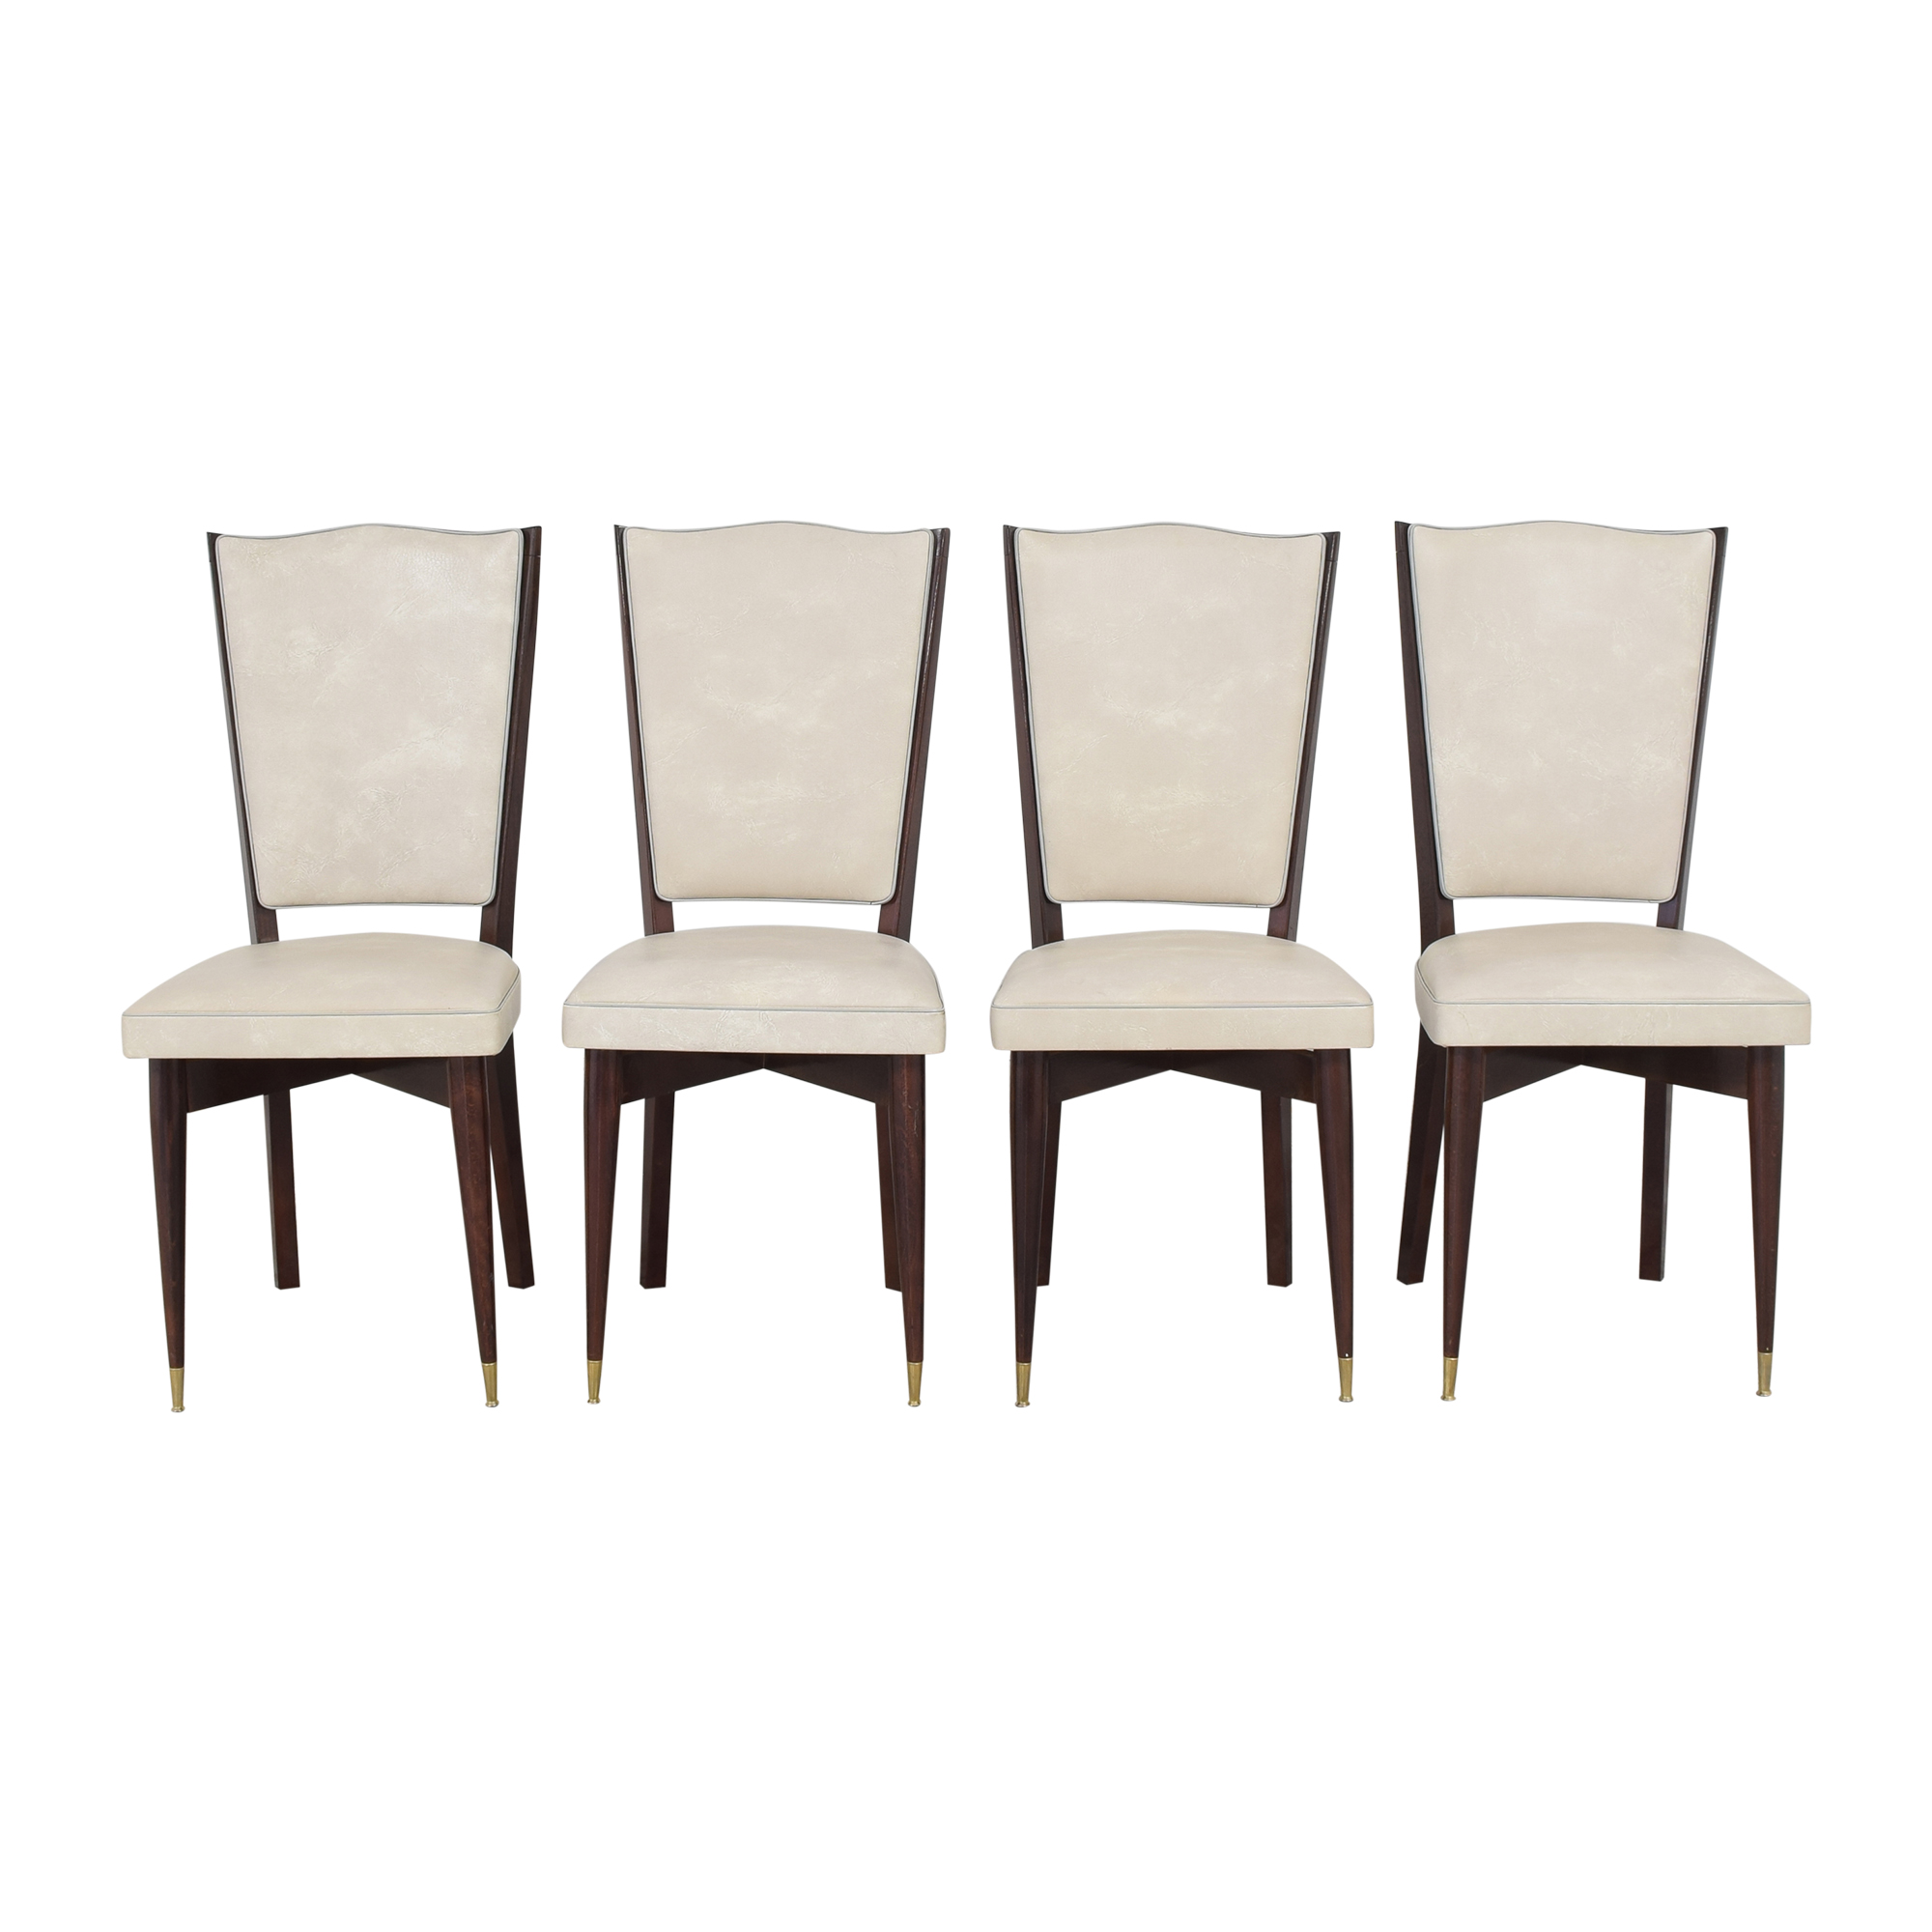 Art Deco-Style Dining Chairs / Dining Chairs